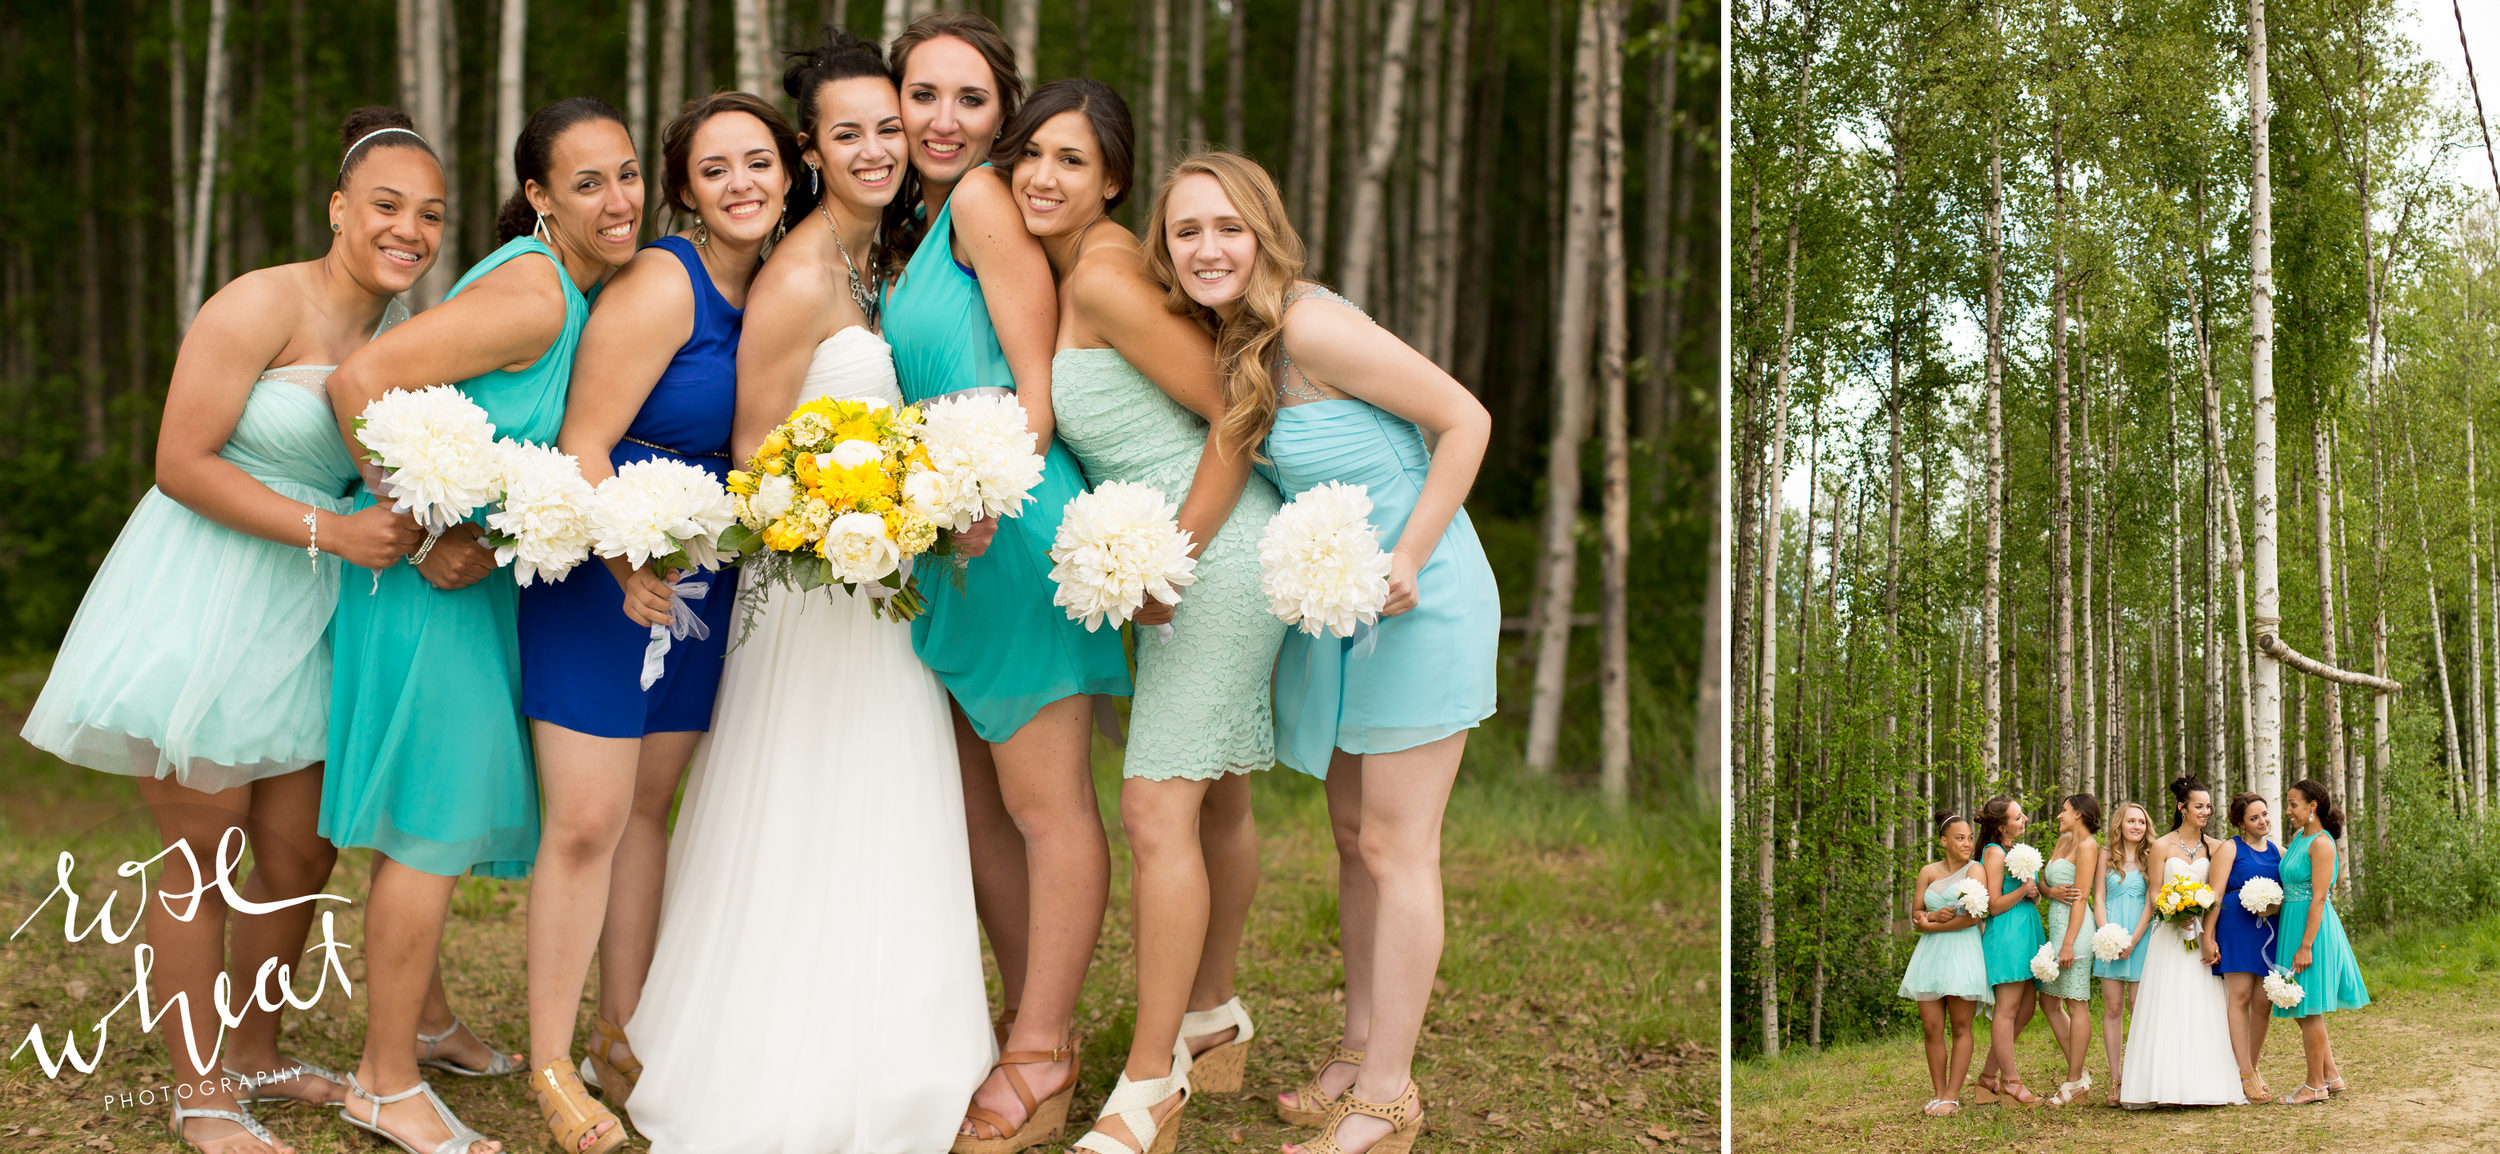 002. FAirbanks_AK_Wedding_Turquoise_Mismatched_Bridesmaids.jpg